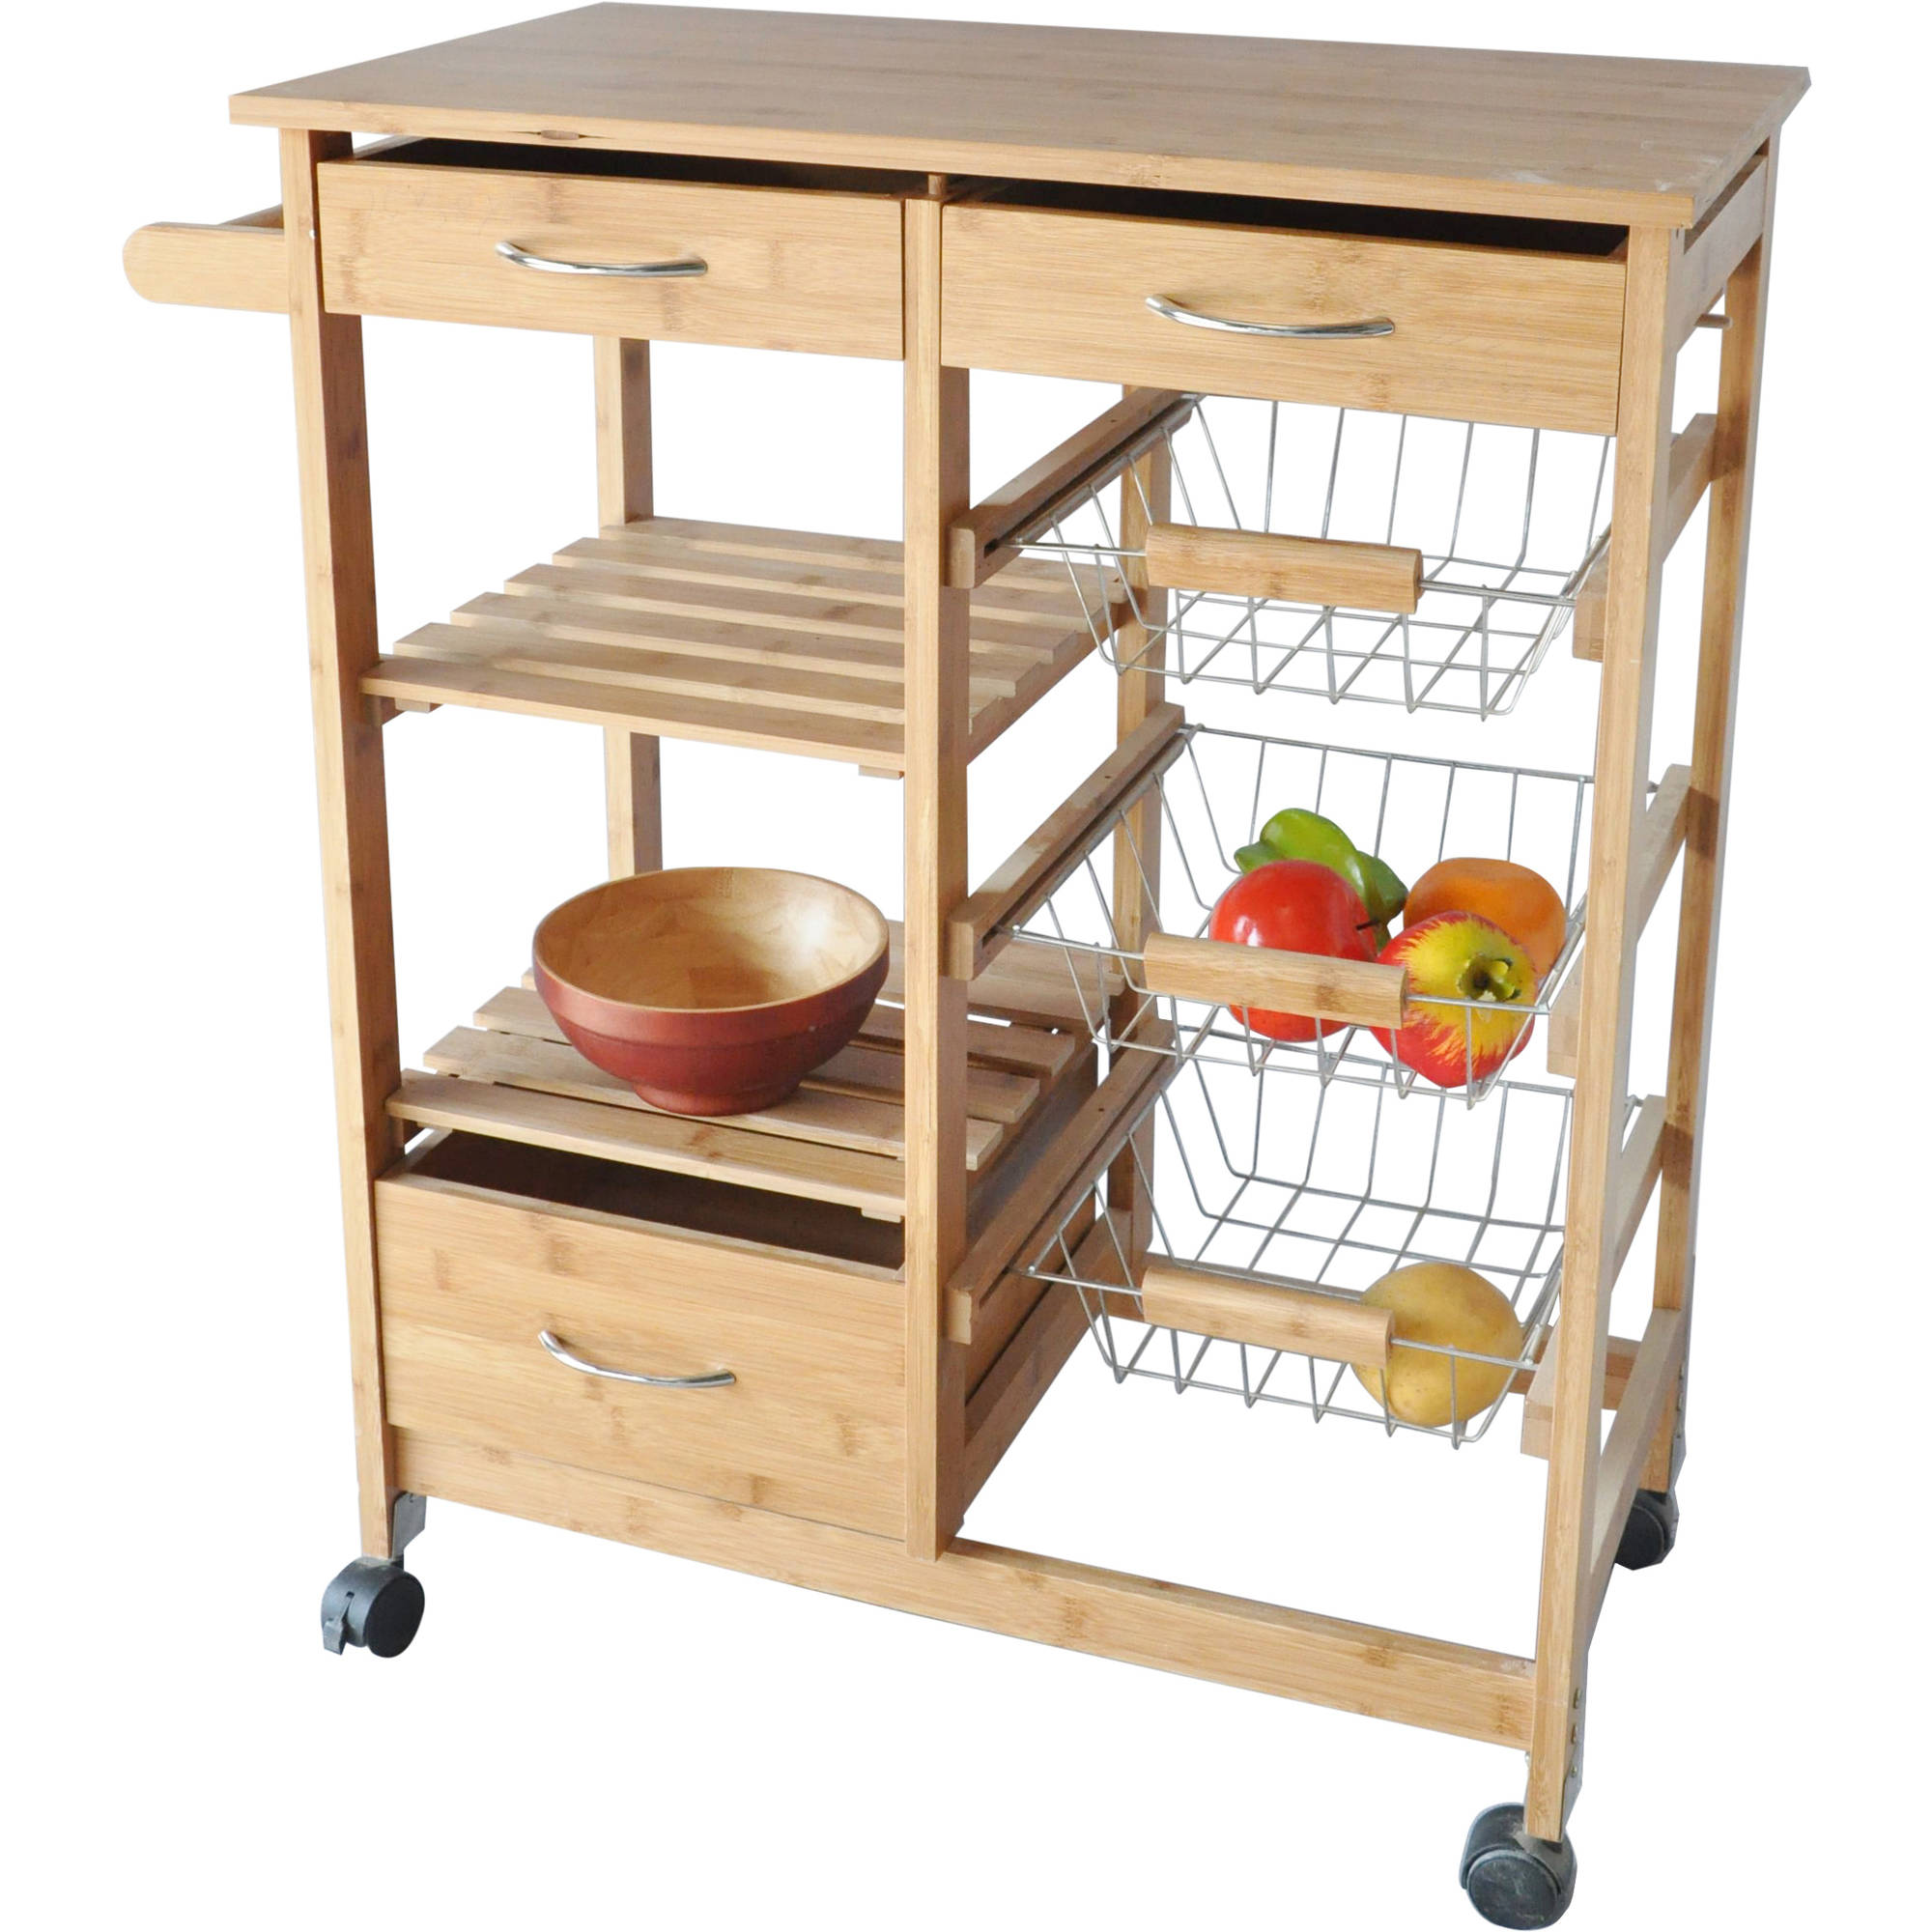 kitchen trolley cost of replacing cabinets costway rolling cart steel top removable tray w storage basket drawers walmart com